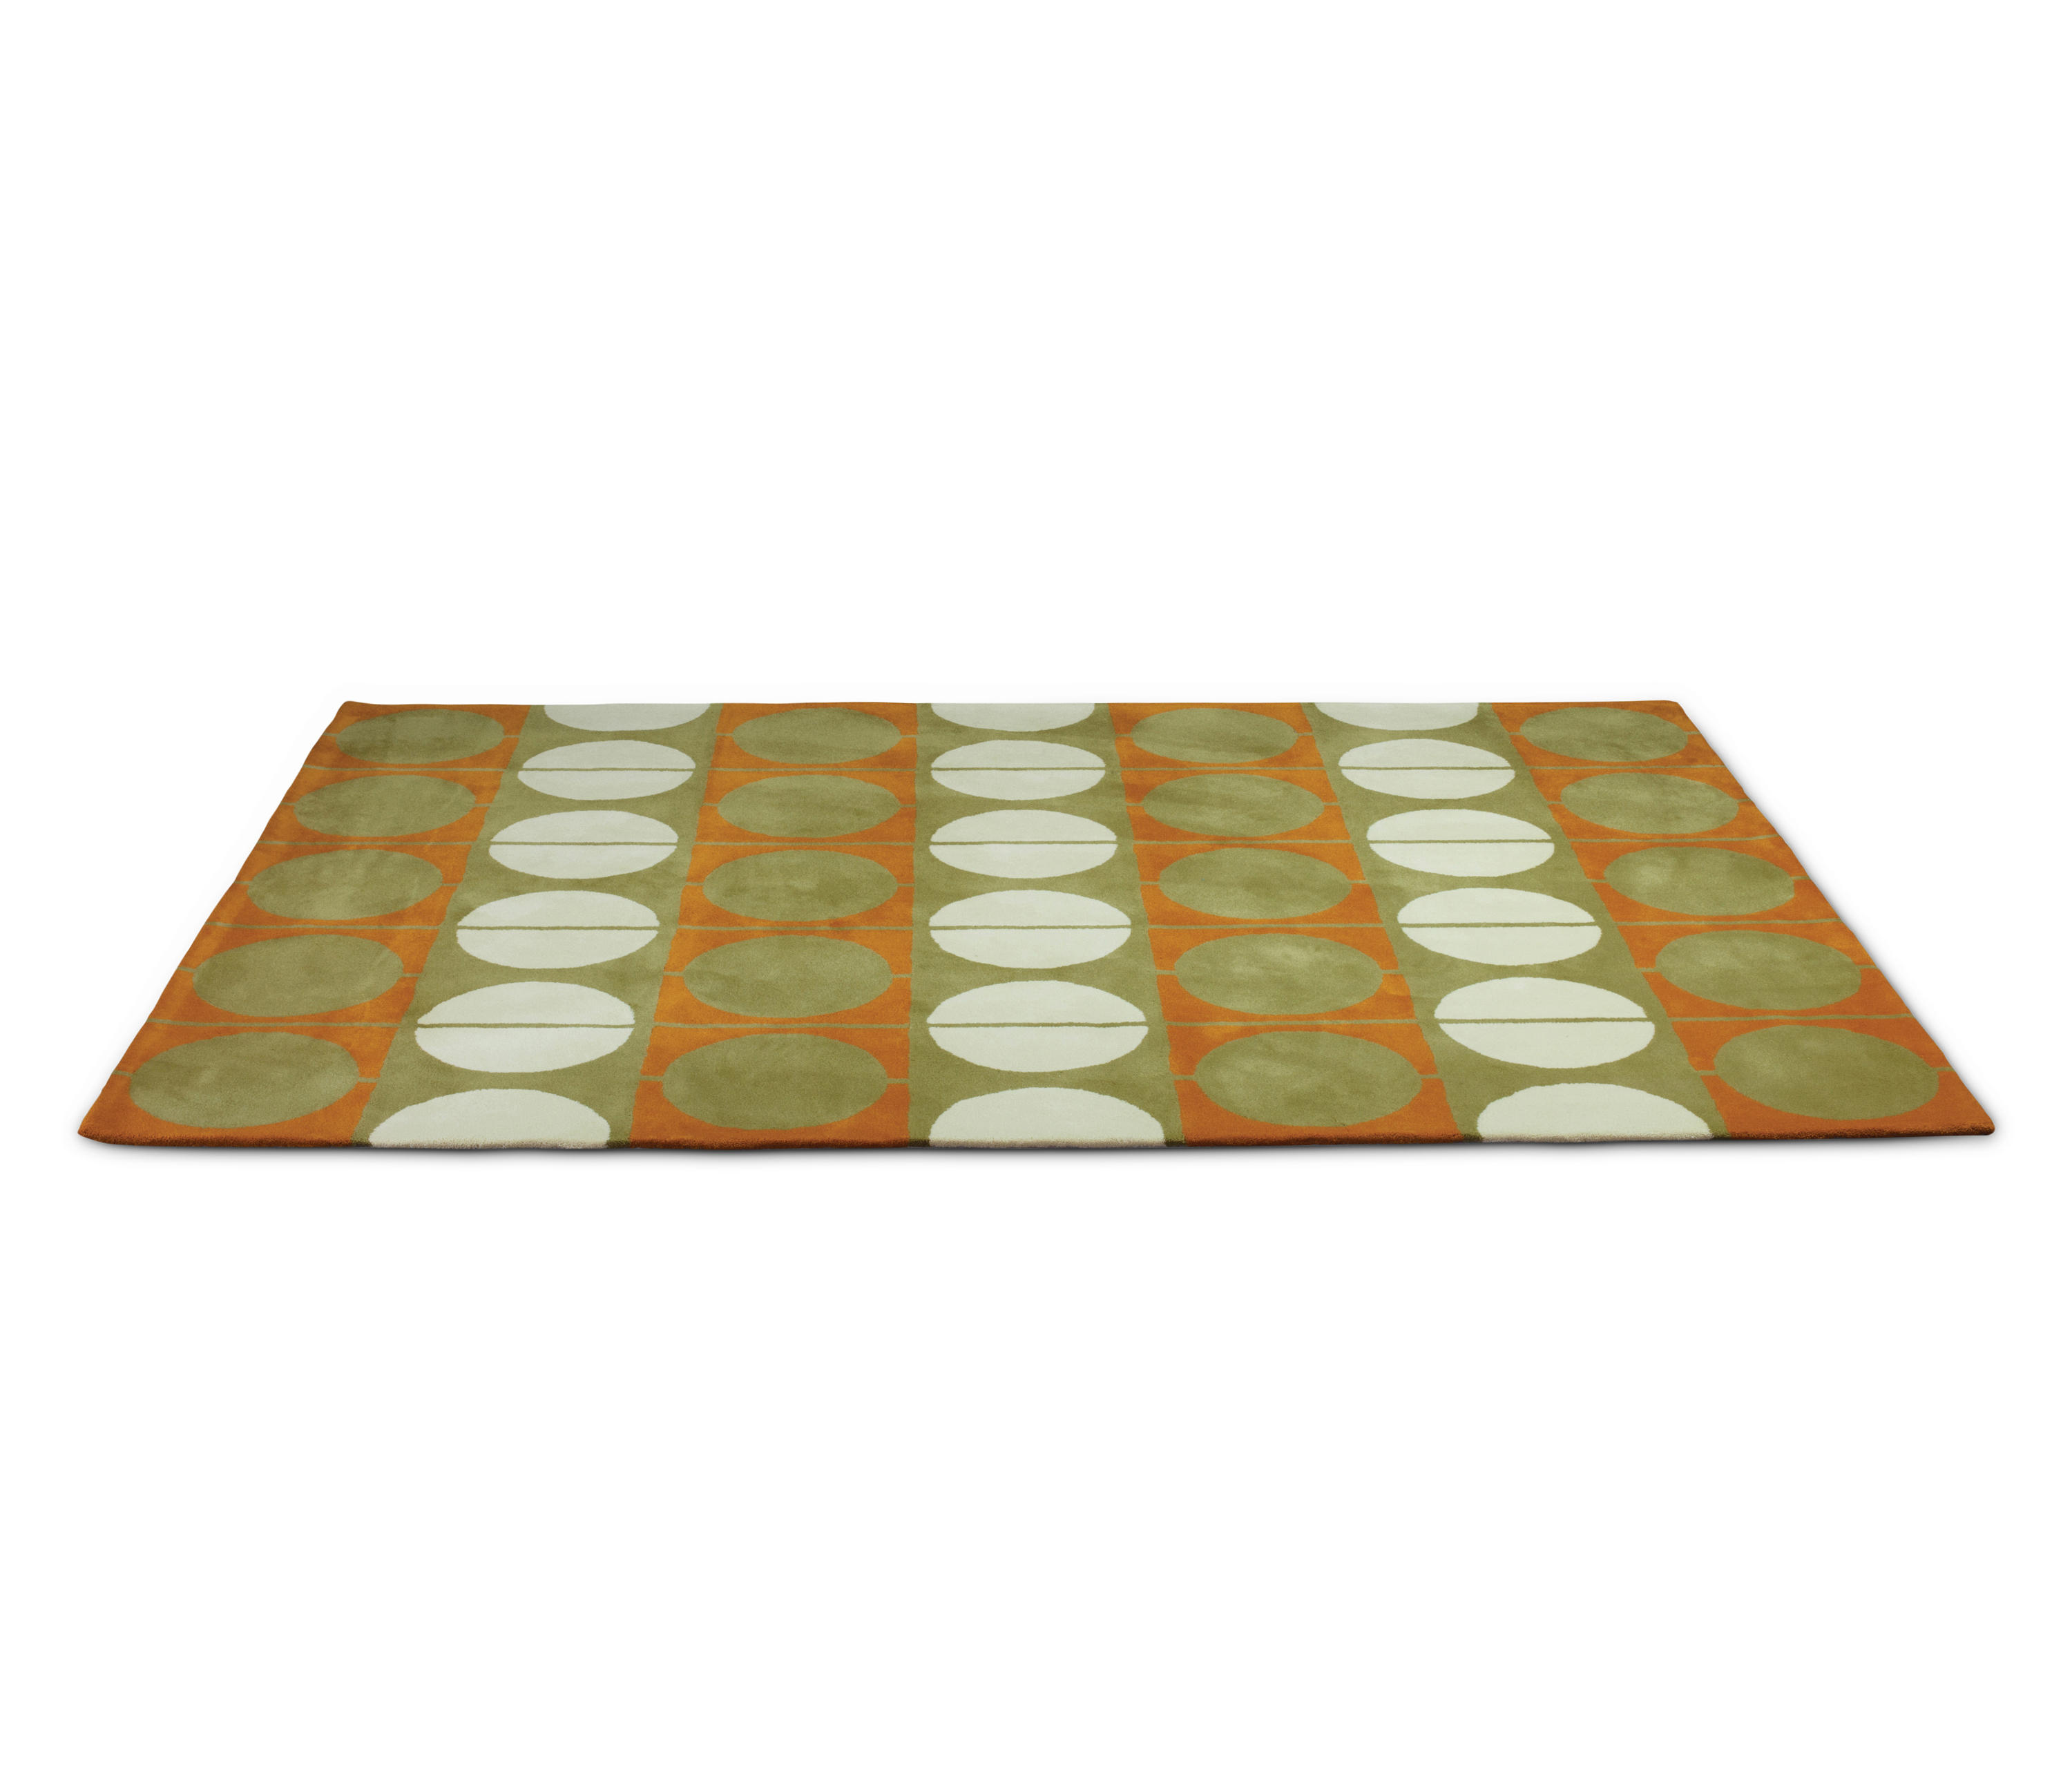 Bettsofa Japanisch Circle Rug Rugs From House Of Finn Juhl Onecollection Architonic